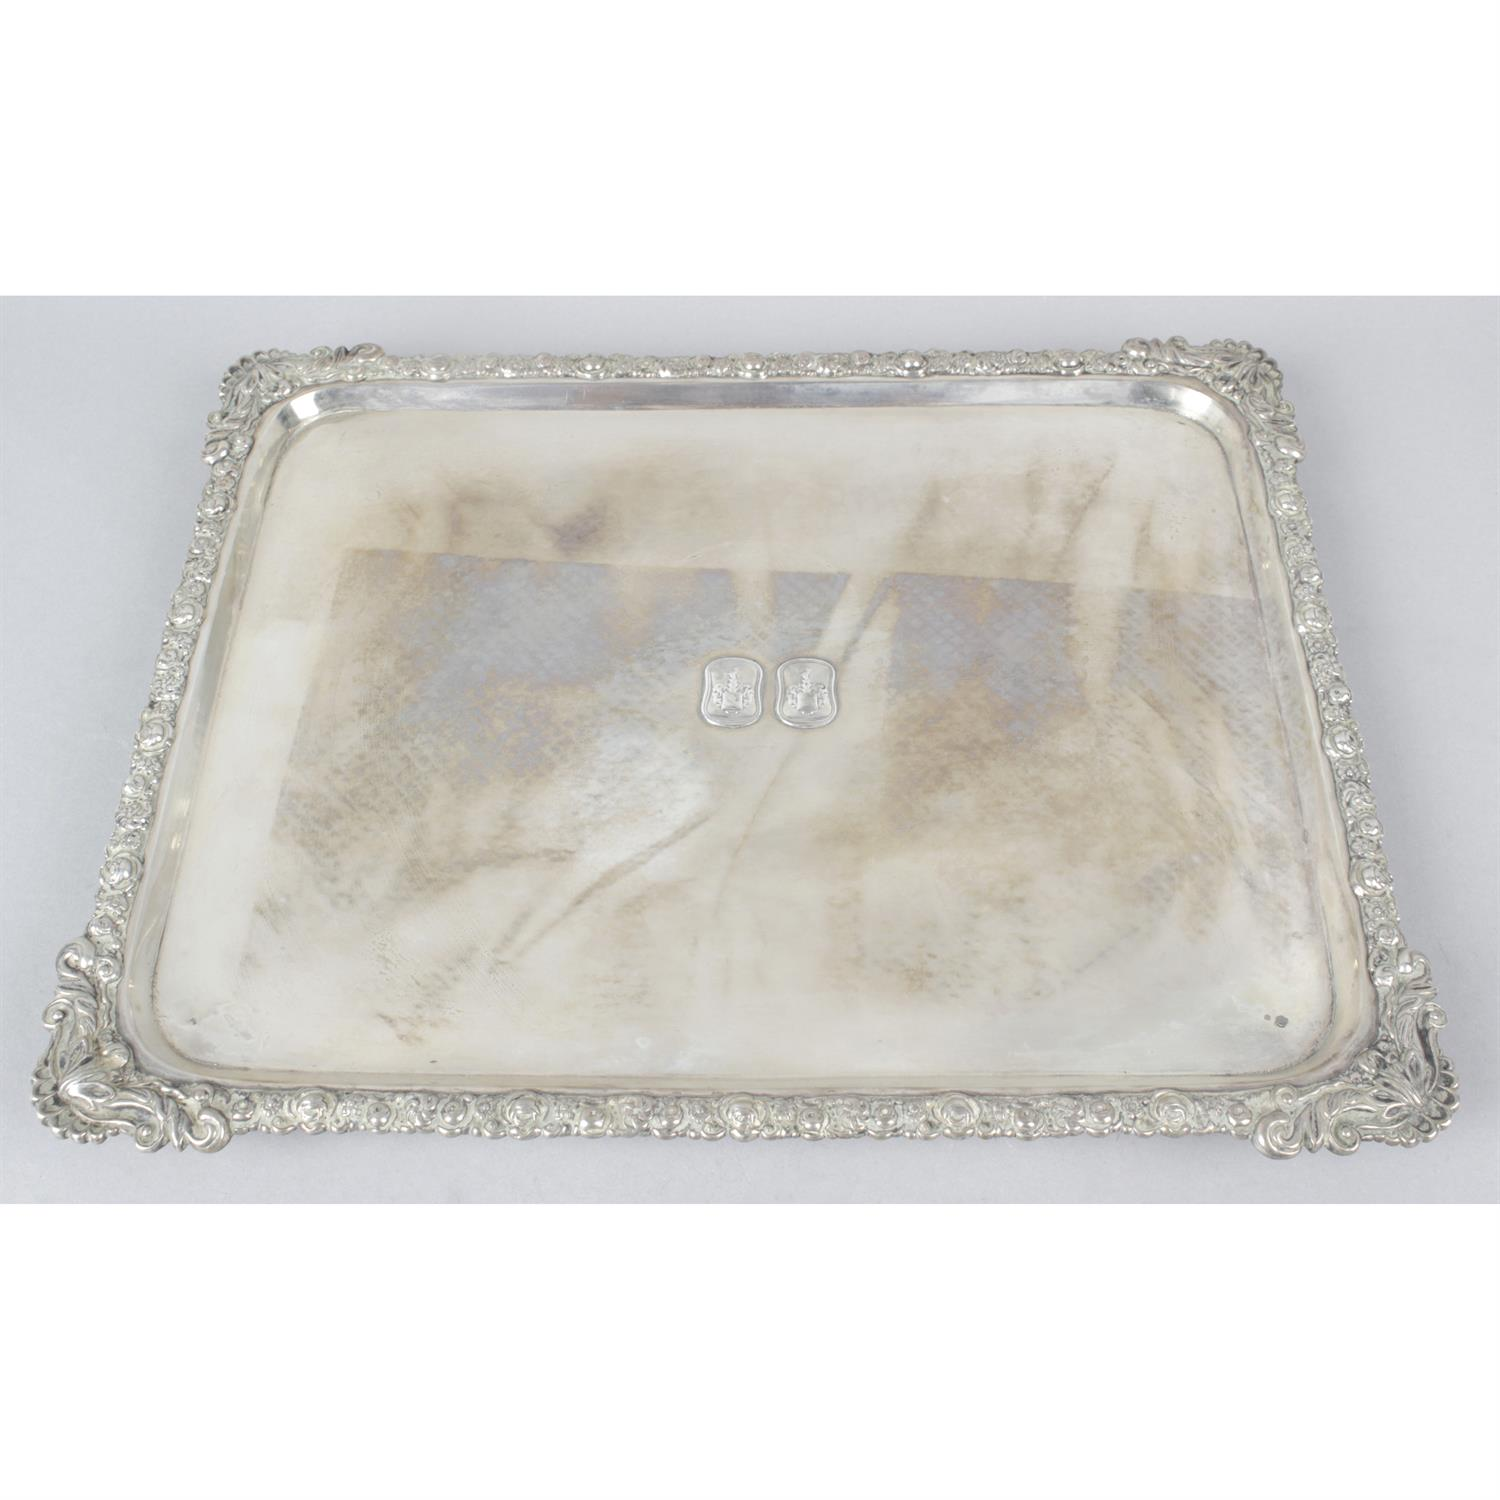 A continental rectangular tray, possibly 19th century Austria-Hungary.